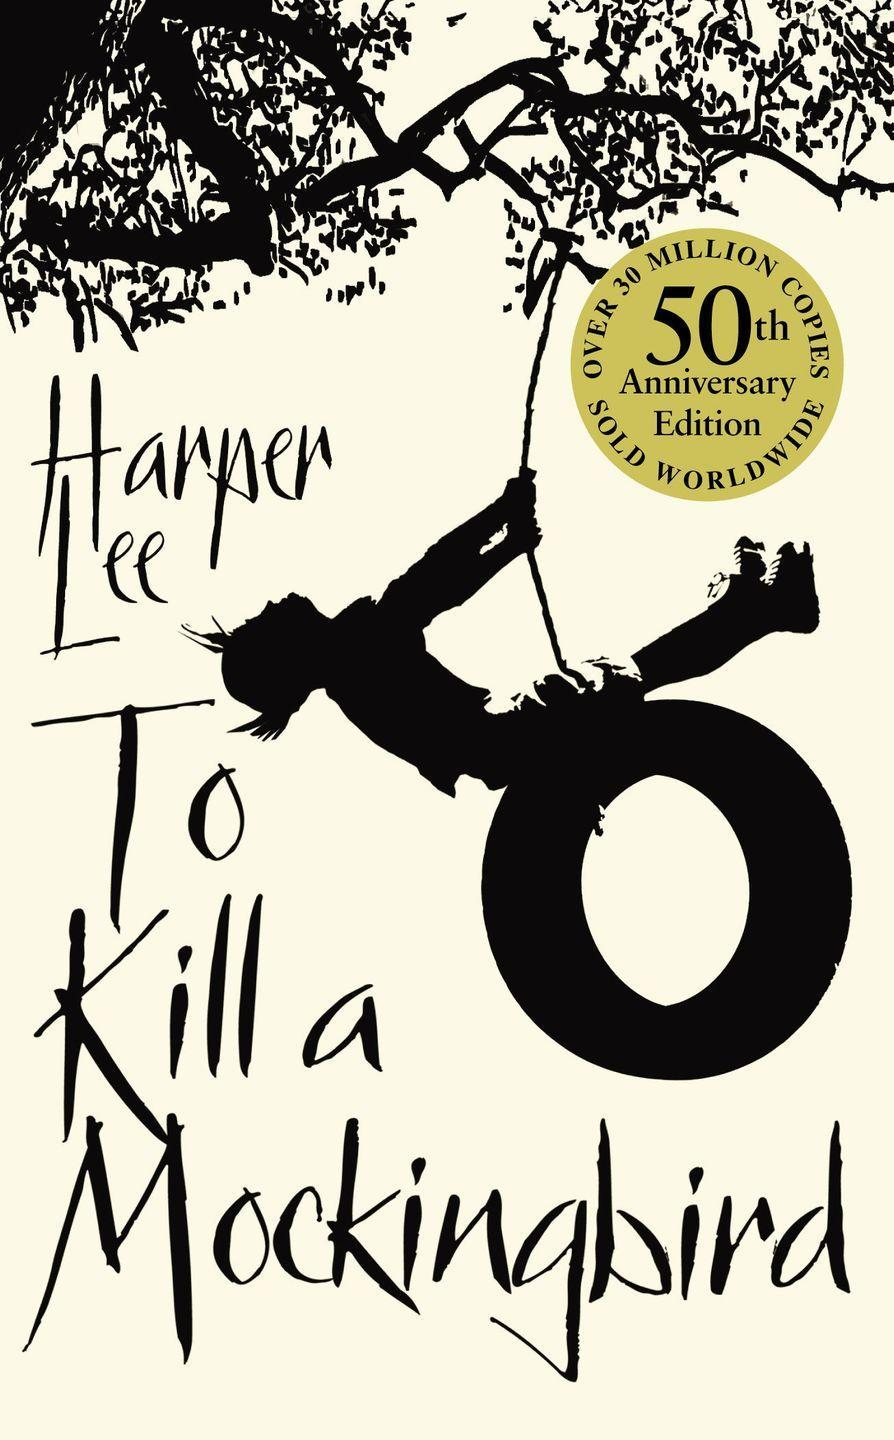 "<p>A school favourite that stands the test of time. Harper Lee tells the story through the eyes of 6-year-old Scout Finch, the daughter of Atticus, a lawyer defending a black man charged with the rape of a white girl in the Deep South. It deservedly won the Pulitzer Prize in 1961.</p><p><a class=""link rapid-noclick-resp"" href=""https://www.amazon.co.uk/Kill-Mockingbird-Harper-Lee/dp/0099549484?tag=hearstuk-yahoo-21&ascsubtag=%5Bartid%7C1921.g.32141605%5Bsrc%7Cyahoo-uk"" rel=""nofollow noopener"" target=""_blank"" data-ylk=""slk:SHOP NOW"">SHOP NOW</a></p>"